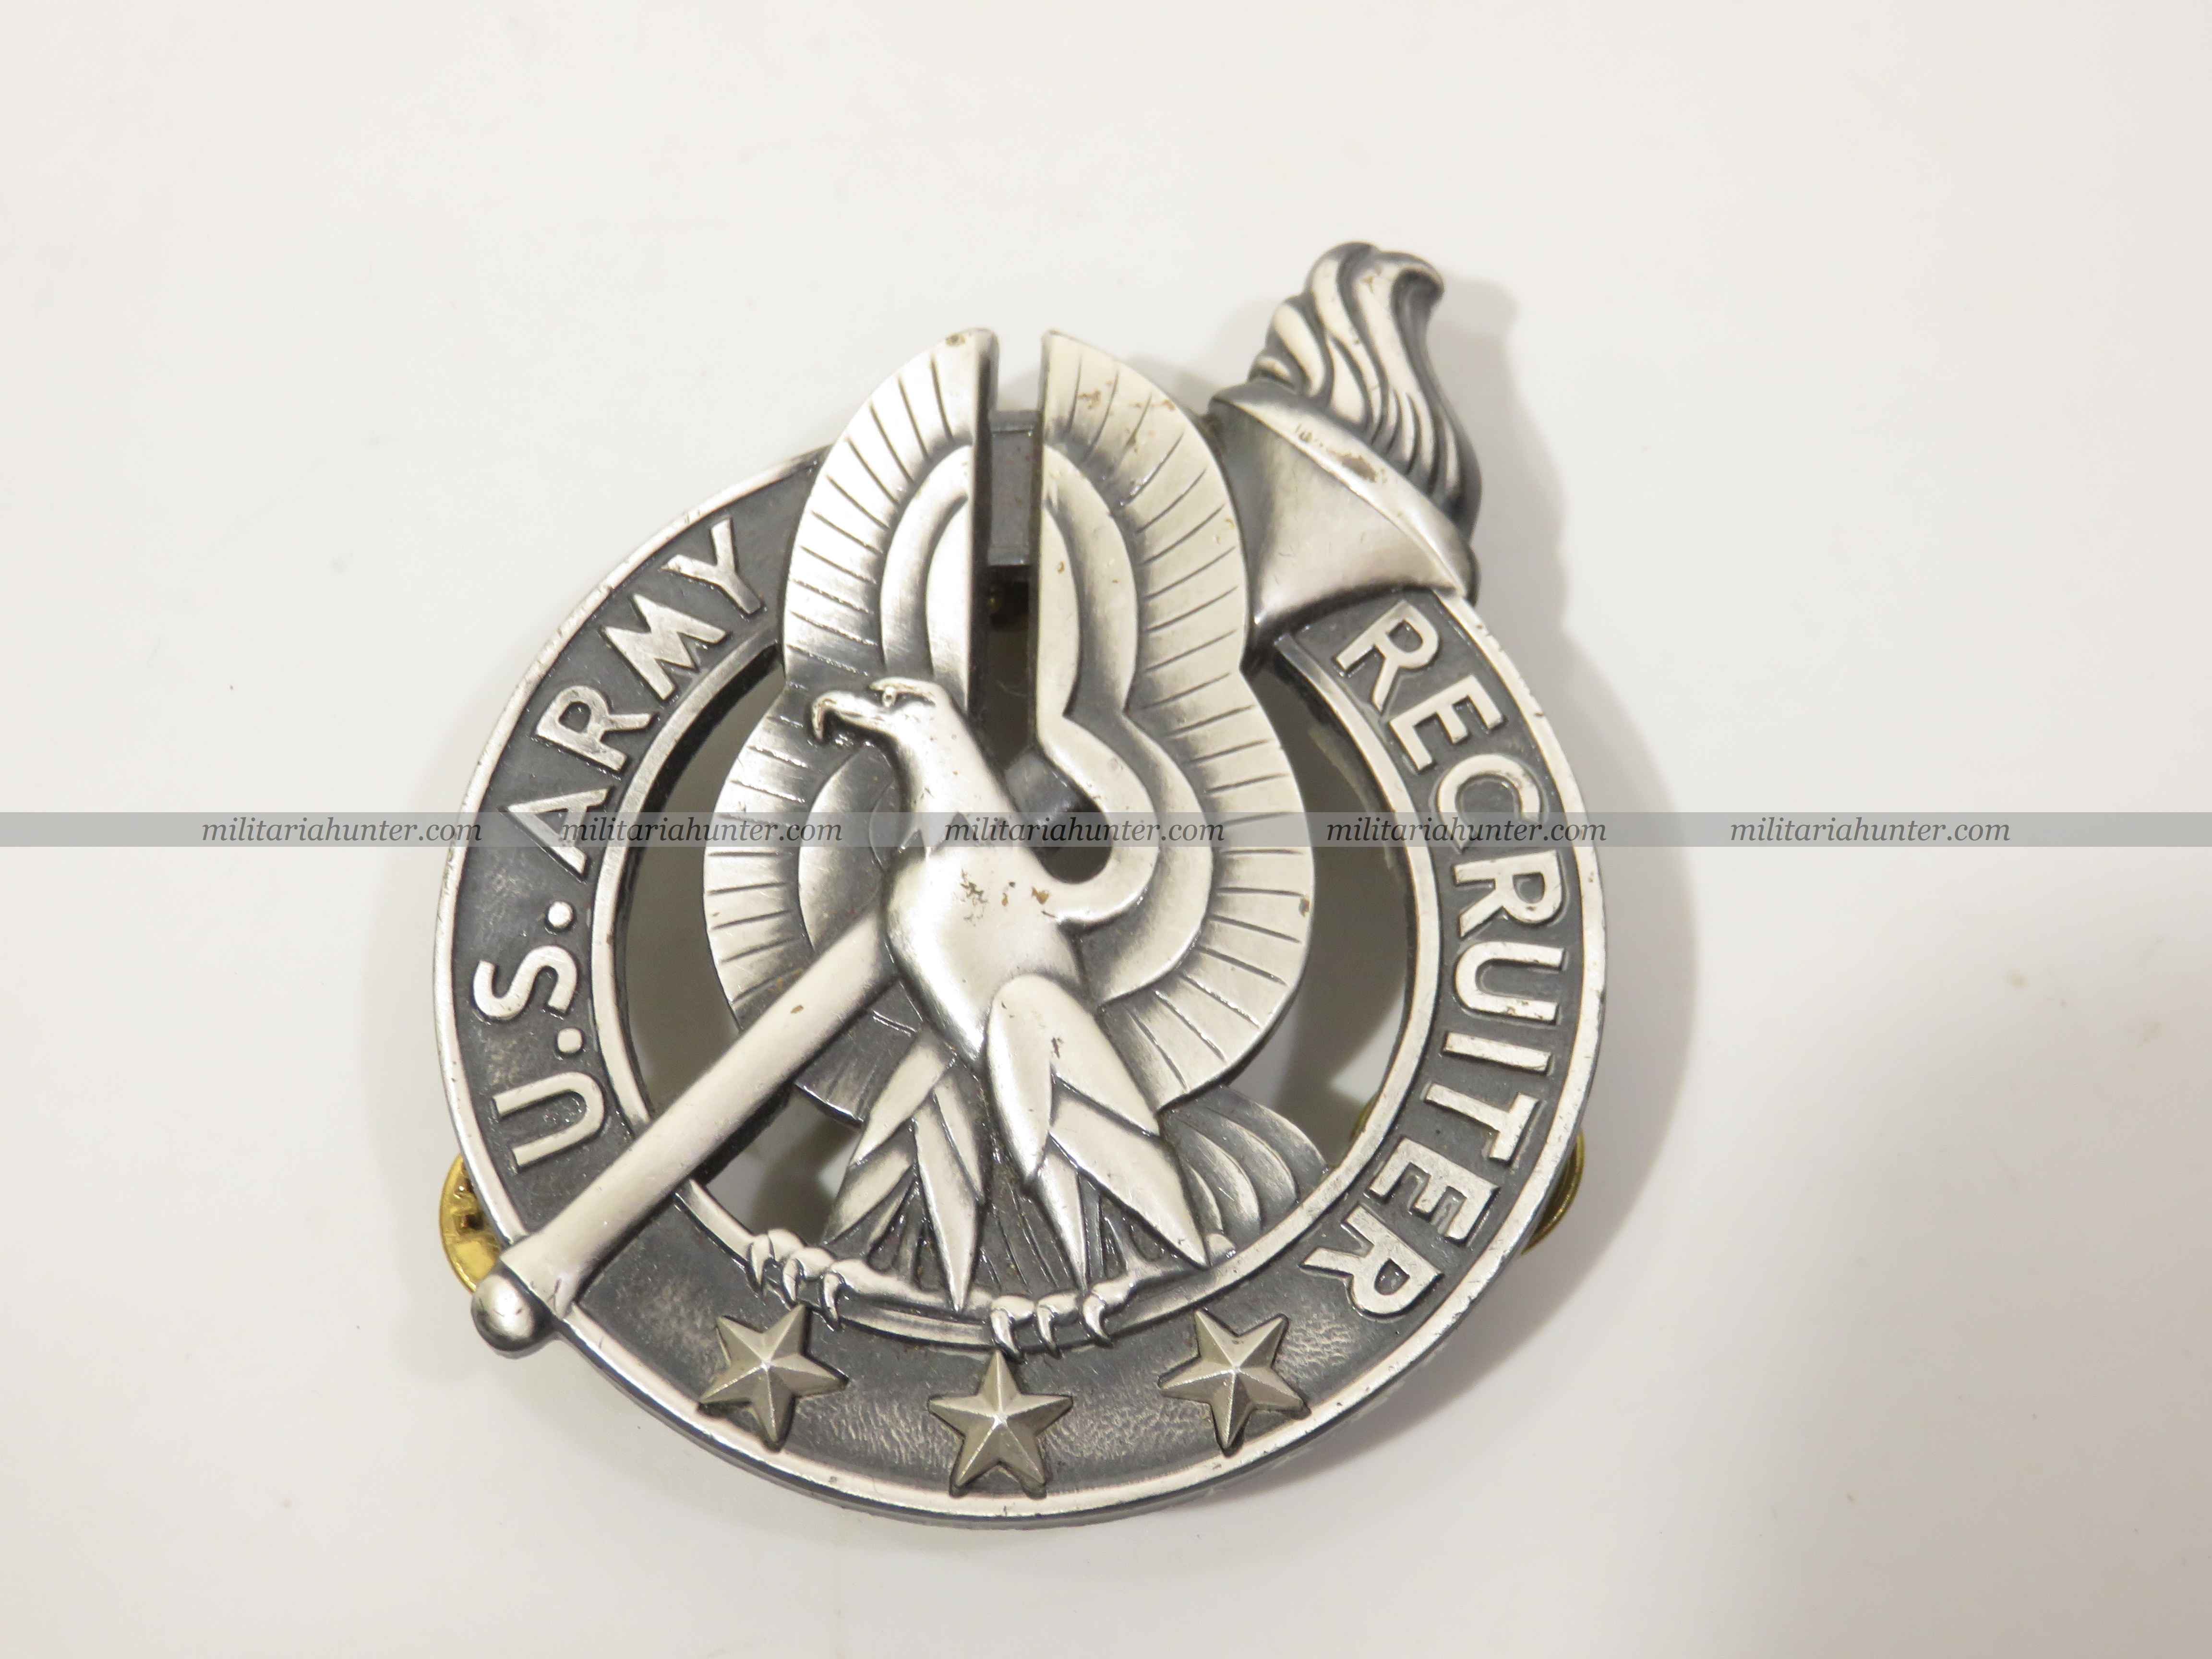 militaria : US modern Army Recruiter badge - badge de recruteur US Army